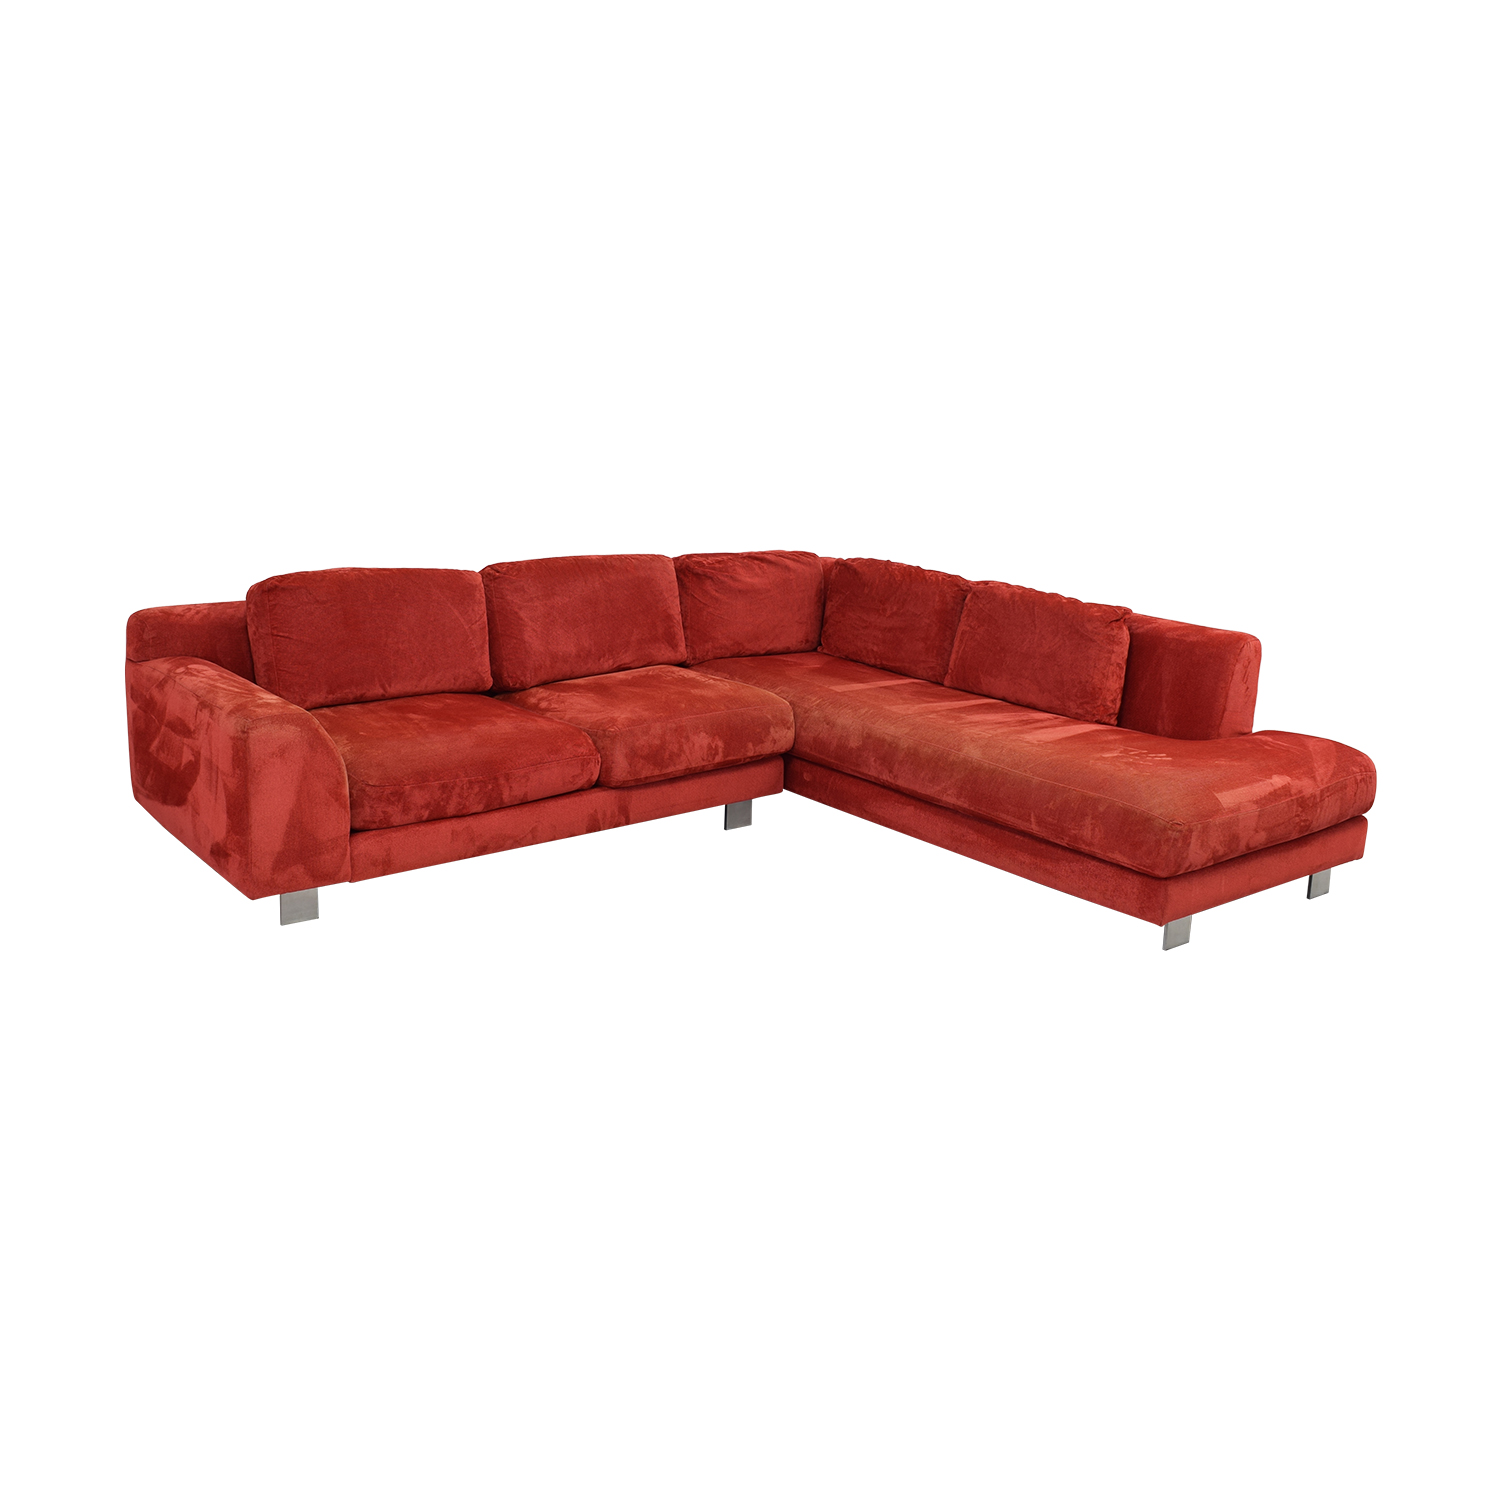 Calligaris Calligaris Sectional Sofa red